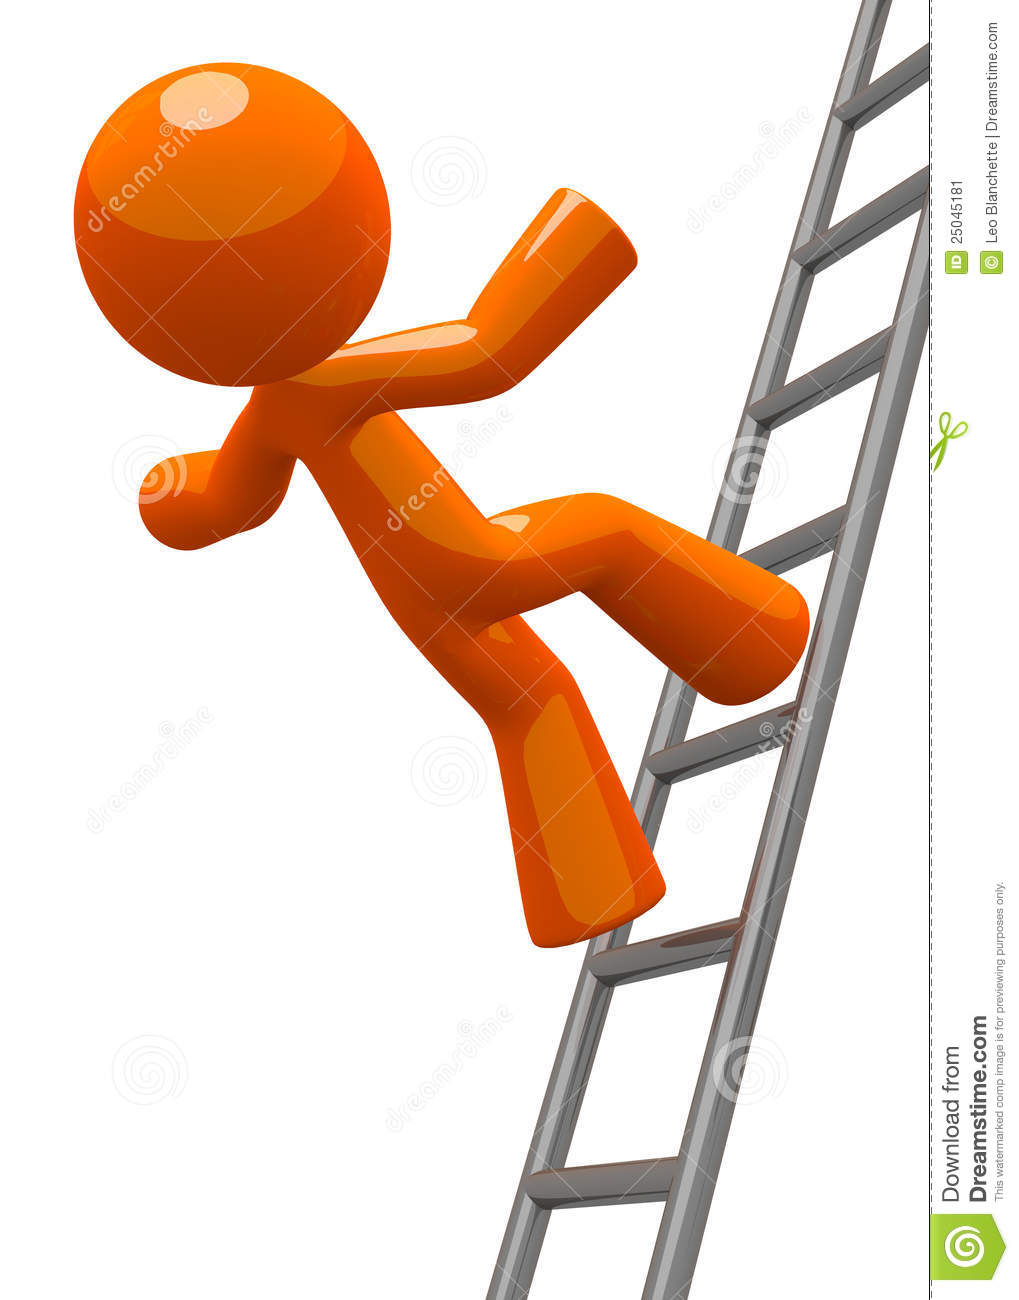 Orange Man Falling From Ladder Accident Stock Image - Image: 25045181